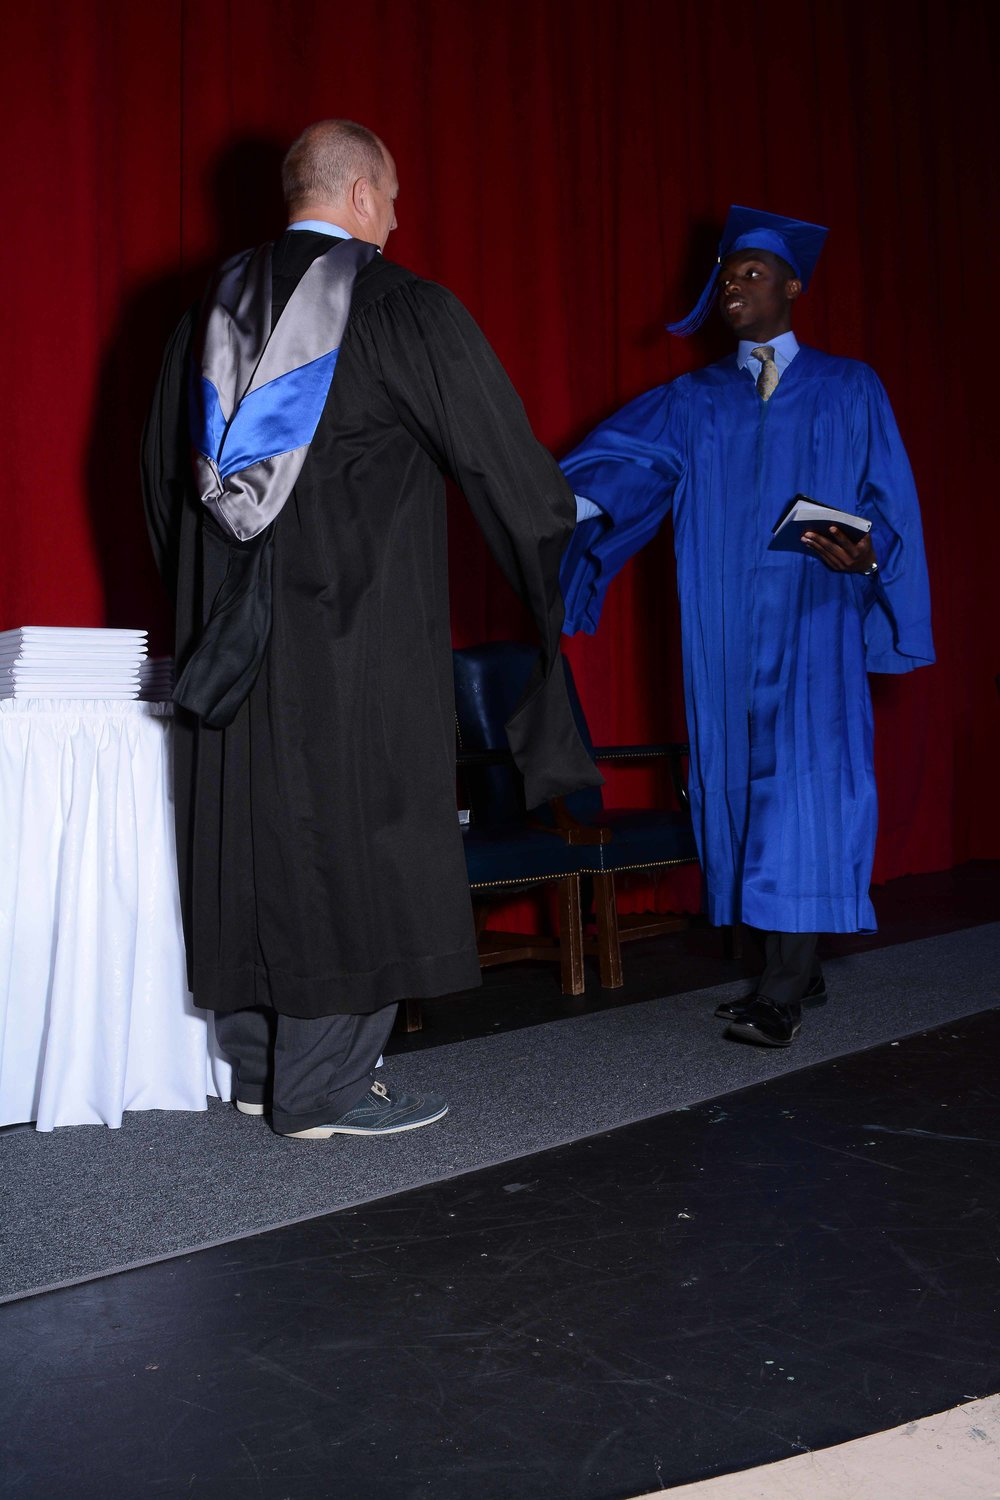 May14 Commencement82.jpg